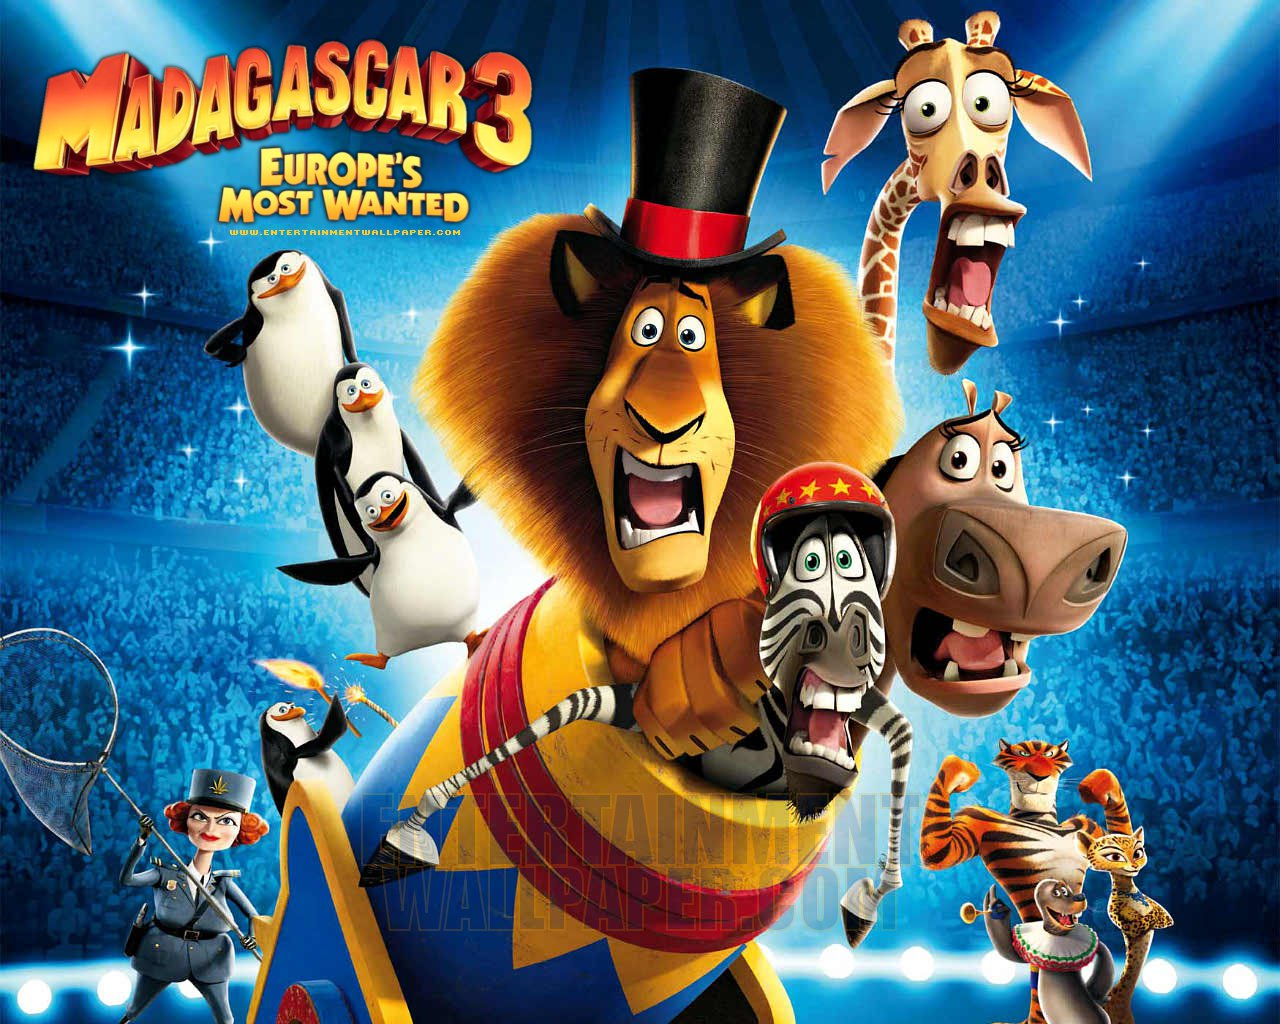 Bosco's word: madagascar 3: europe's most wanted